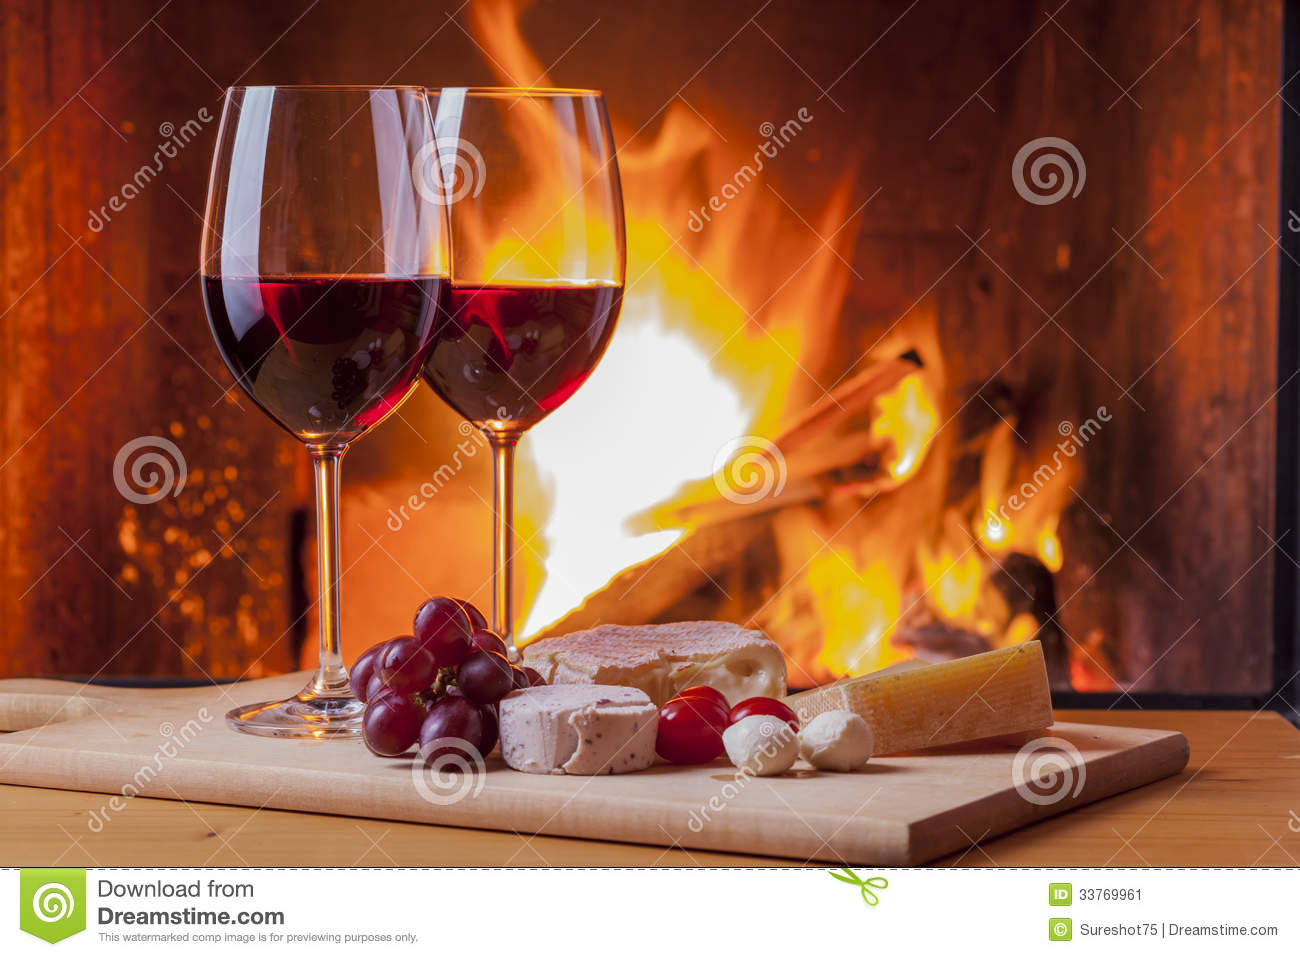 vin rouge avec des casse cro te et des raisins la chemin e image stock image du flamme. Black Bedroom Furniture Sets. Home Design Ideas